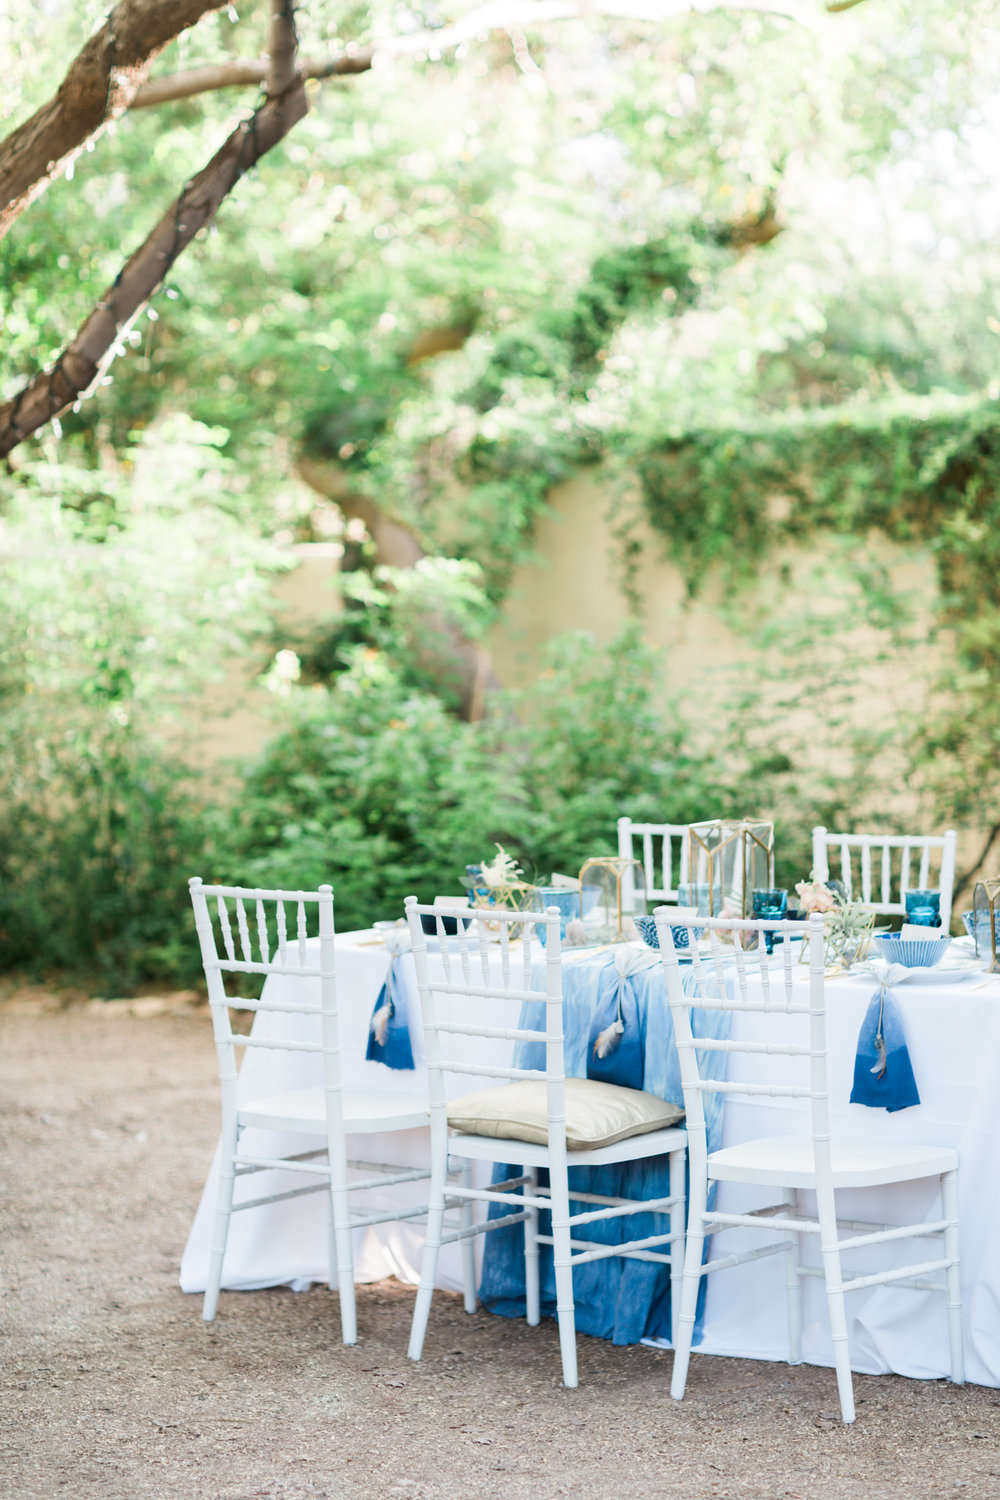 Indigo bohemian wedding at Tohono Chul Gardens by Tucson Wedding photographers Betsy & John